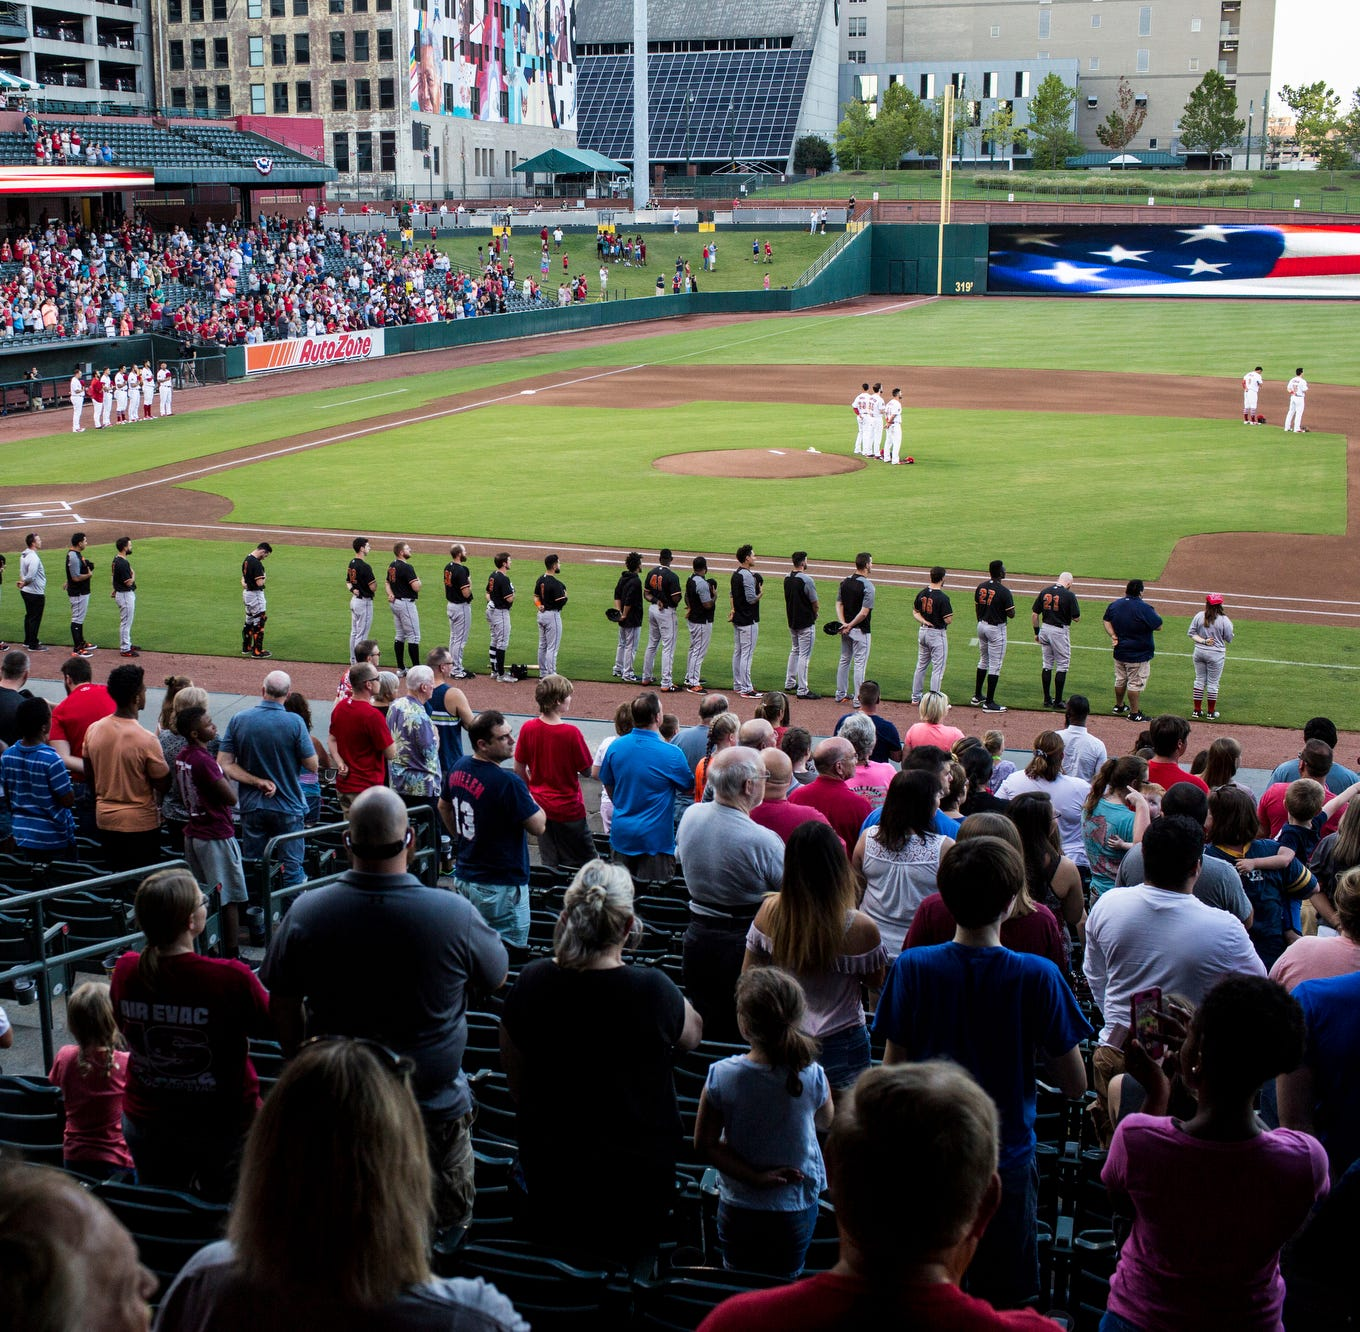 On 20th opening day, AutoZone Park is the gift that keeps on giving to Memphis